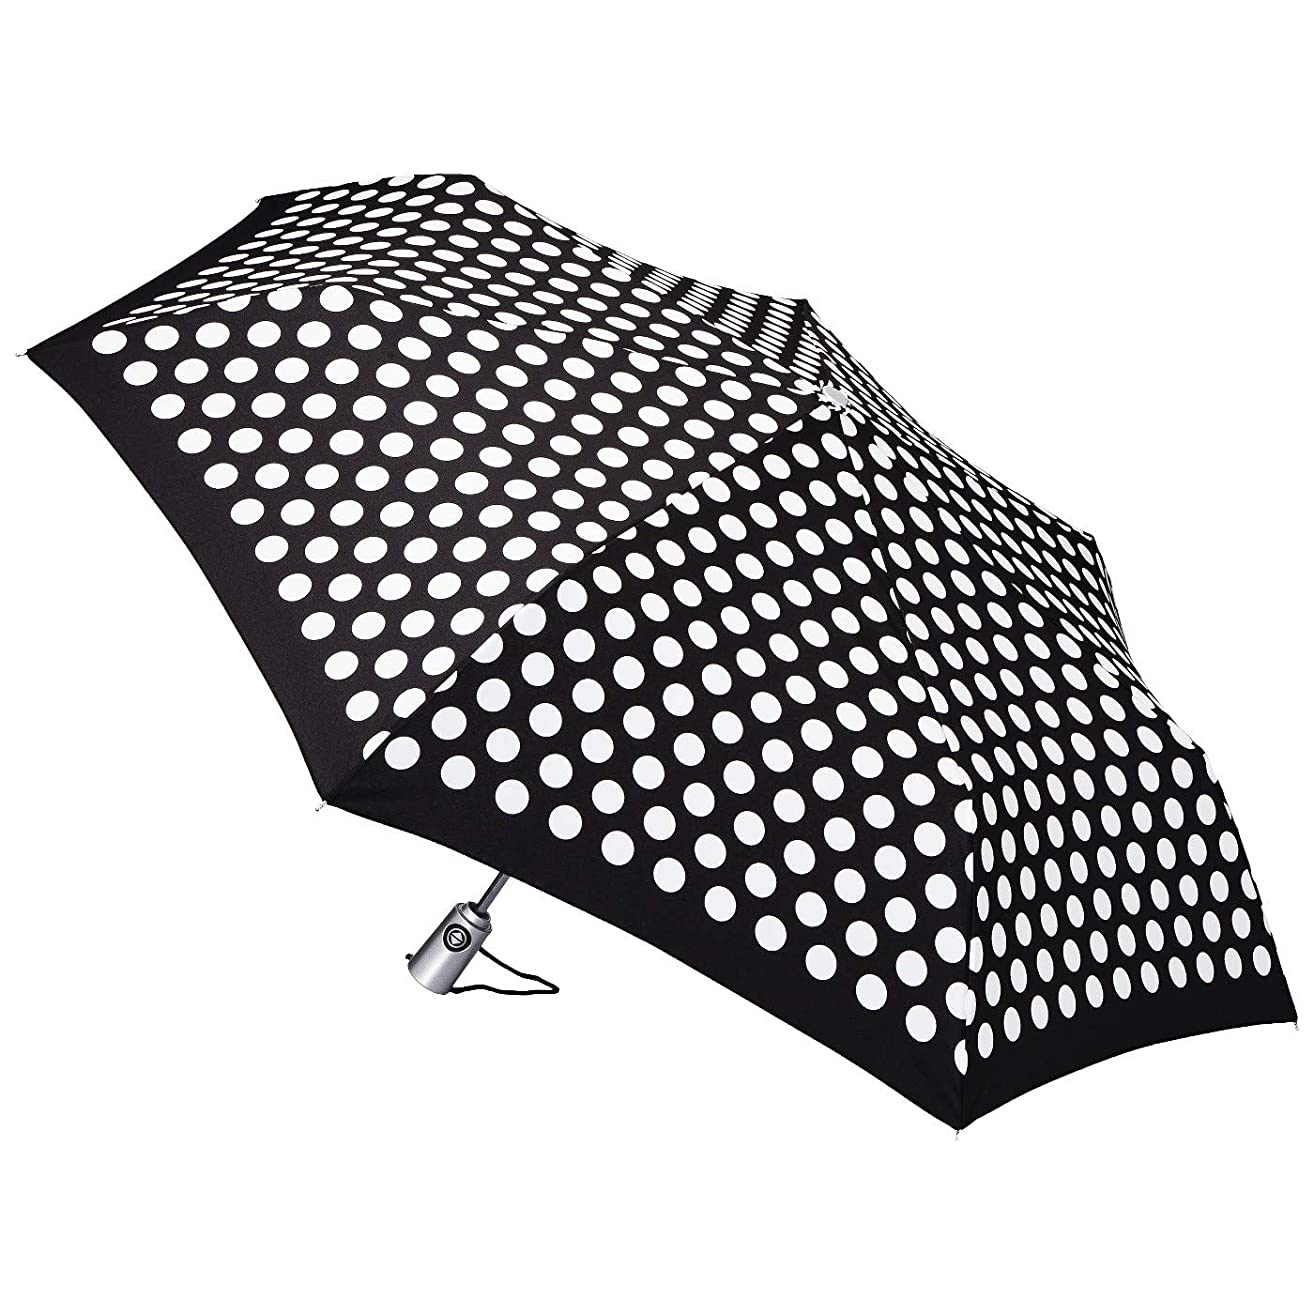 Totes auto open auto close Compact Umbrella With NeverWet Technology Black & White Dots 43